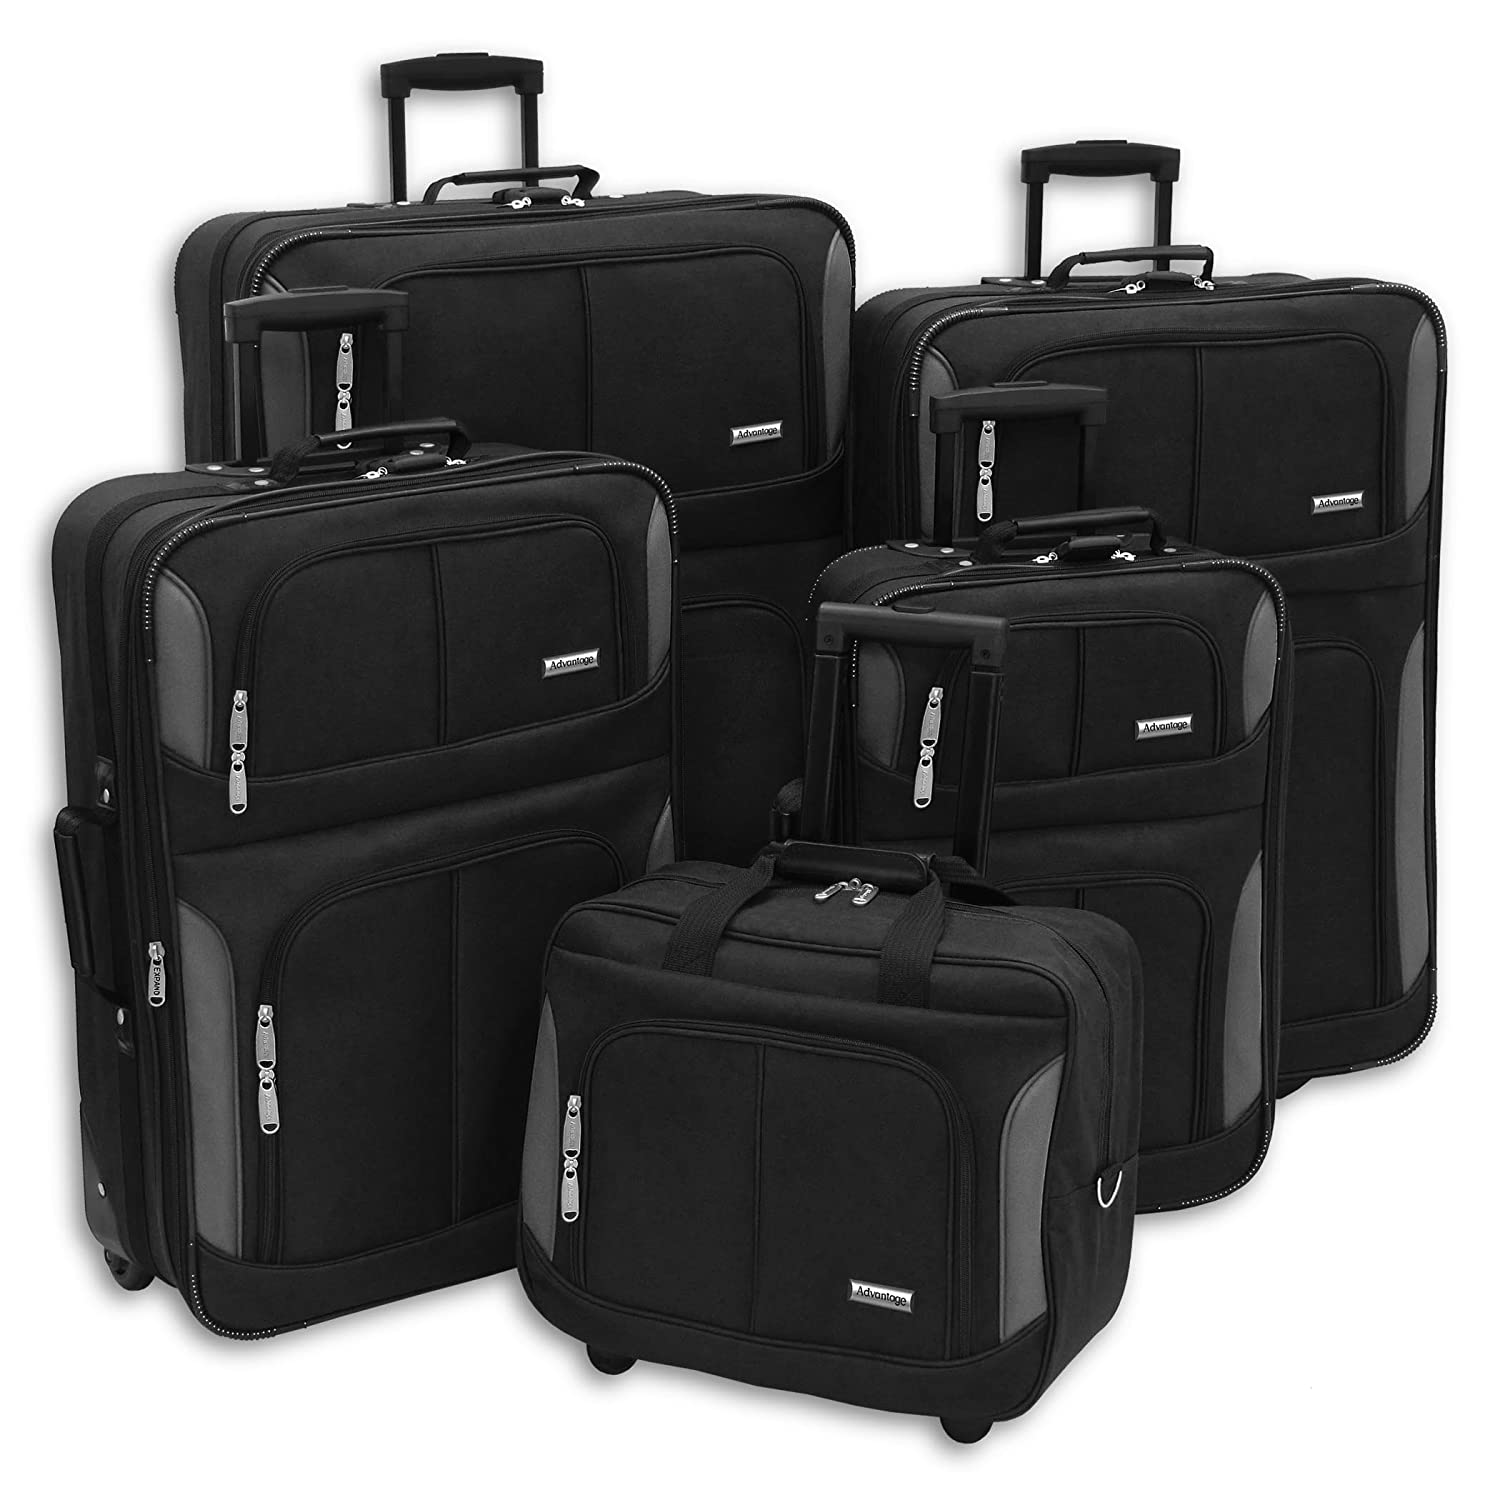 46b5726db8a Amazon.com | American Trunk And Case Luggage Streamline Collection Tote,  Black, One Size | Luggage